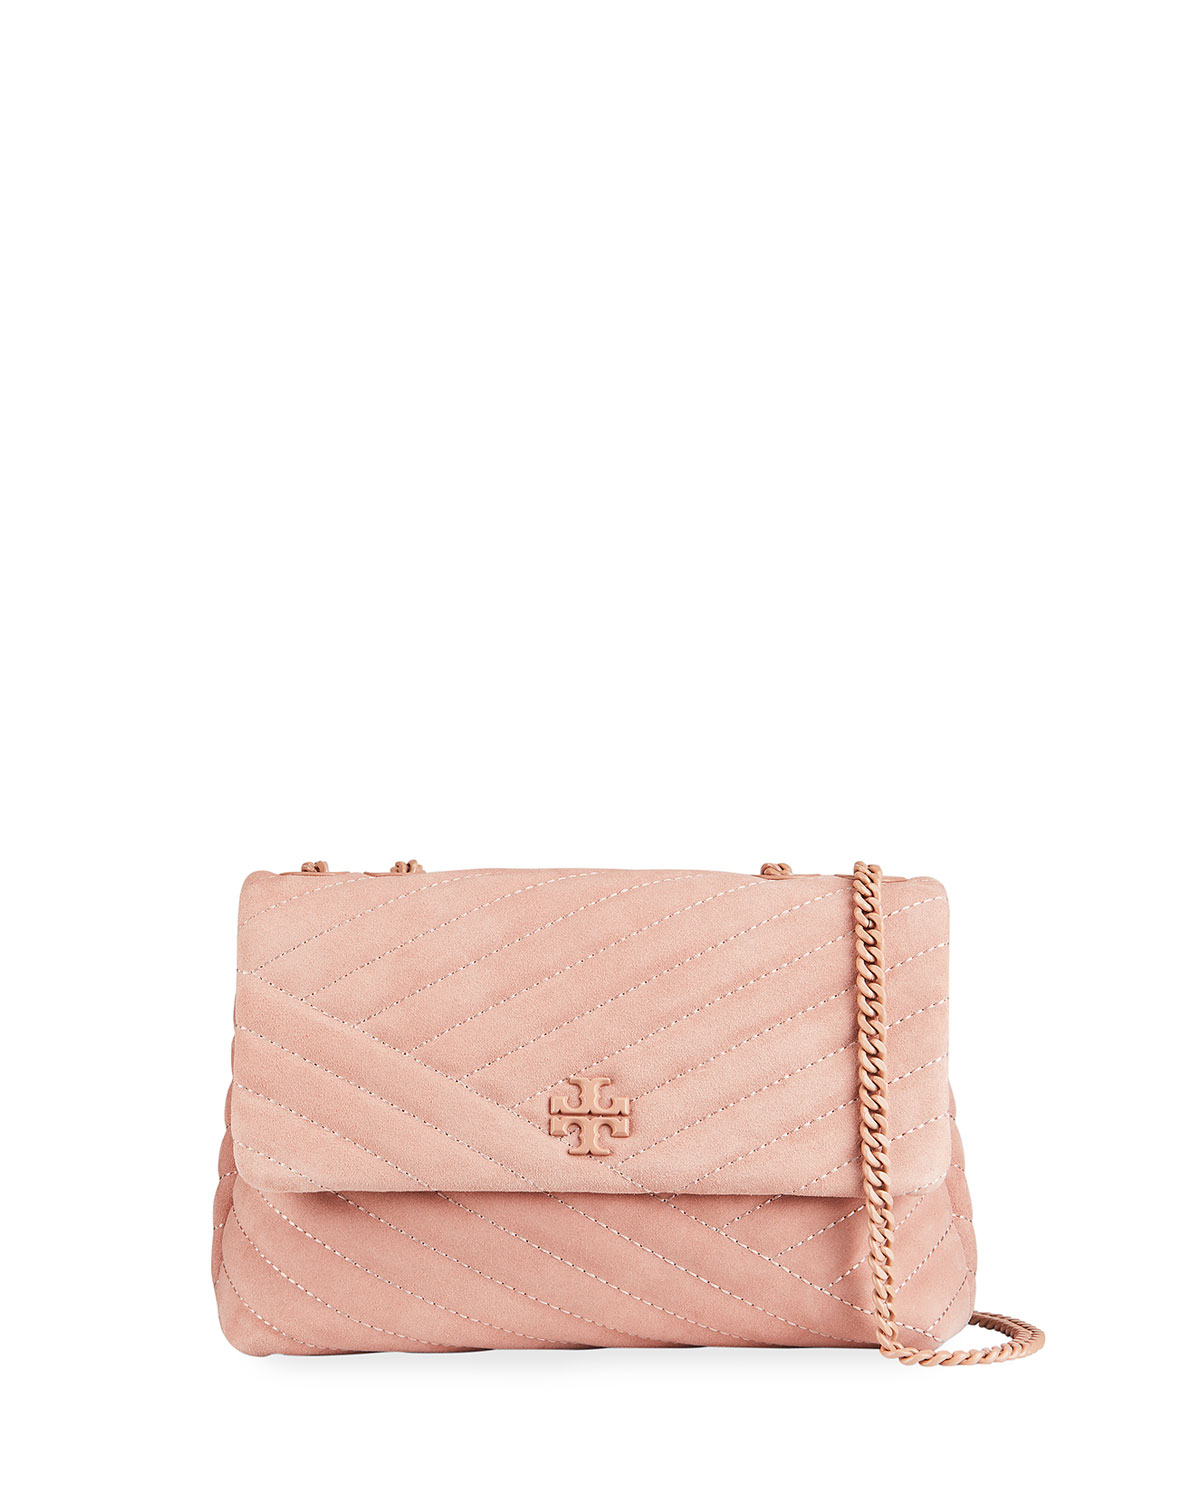 Tory Burch KIRA QUILTED SUEDE SHOULDER BAG